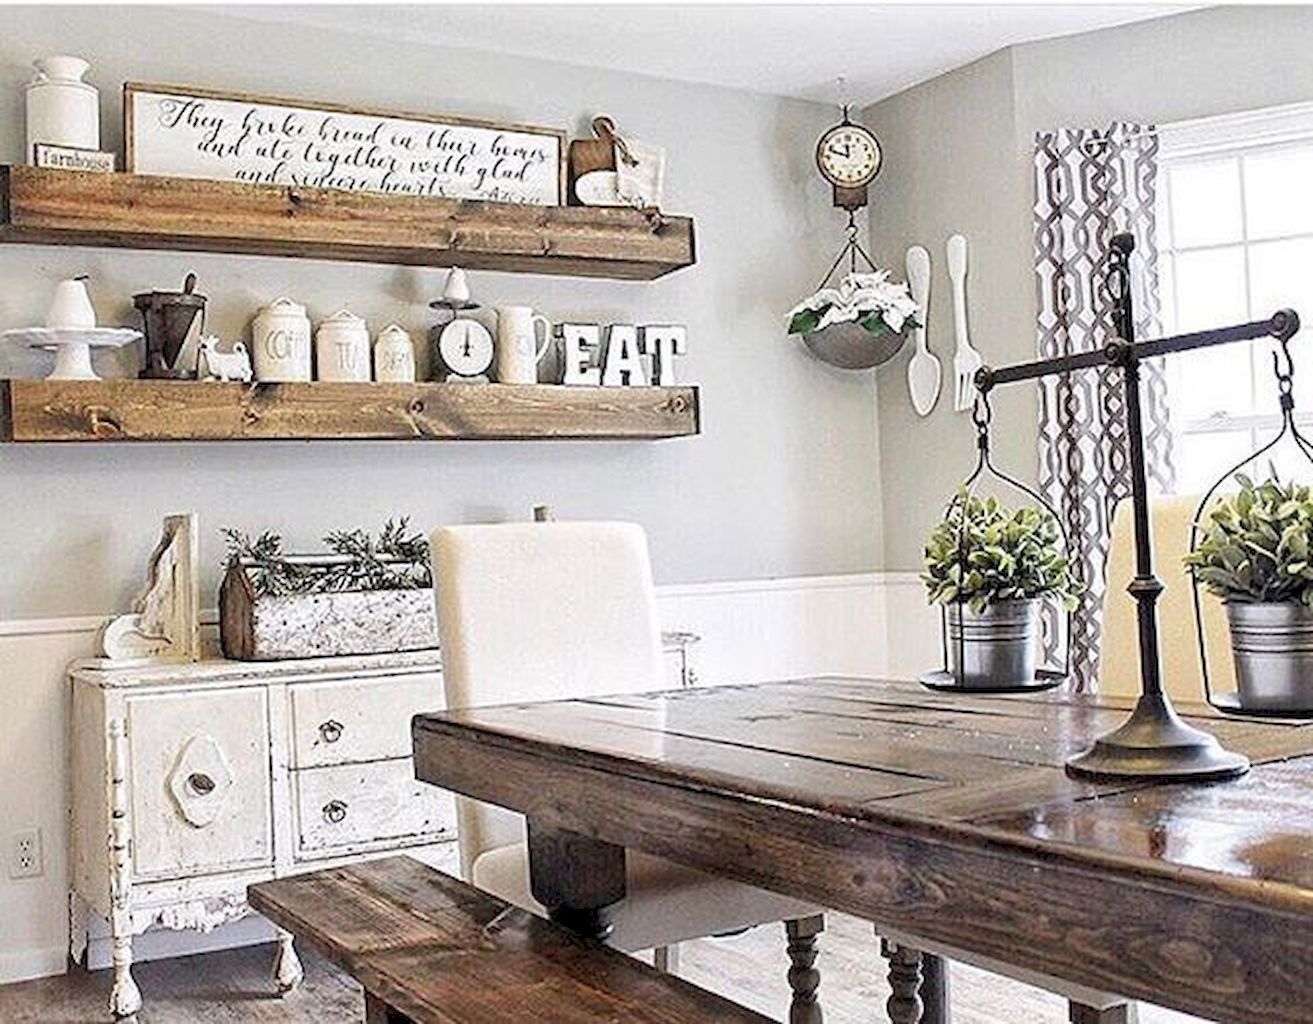 Awesome 90 Modern Farmhouse Dining Room Decor Ideas Https Homearchite Com 2018 01 15 Modern Farmhouse Dining Room Dining Room Remodel Modern Farmhouse Dining